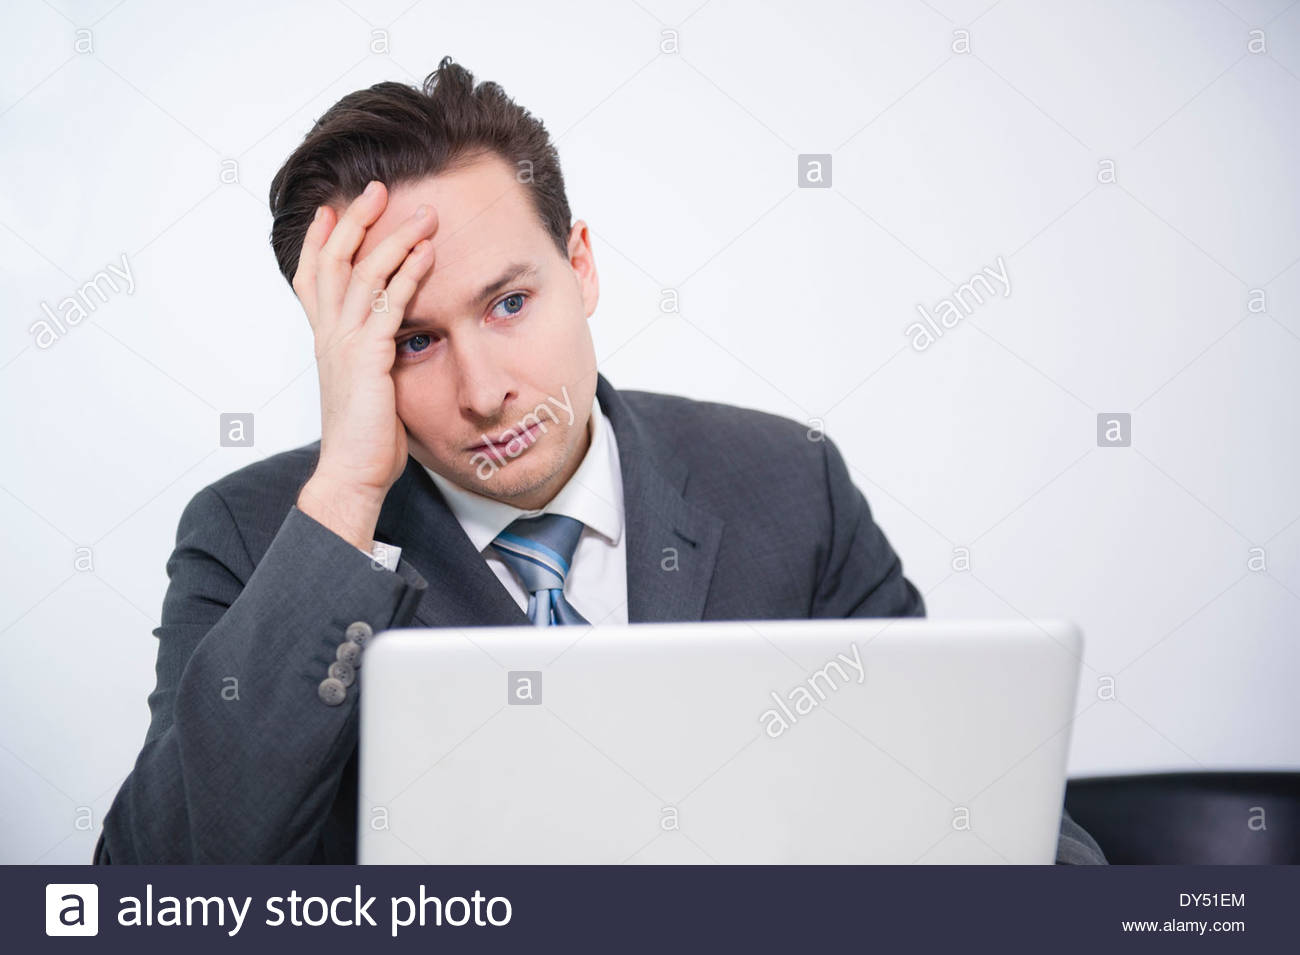 Businessman stressed out in office - Stock Image